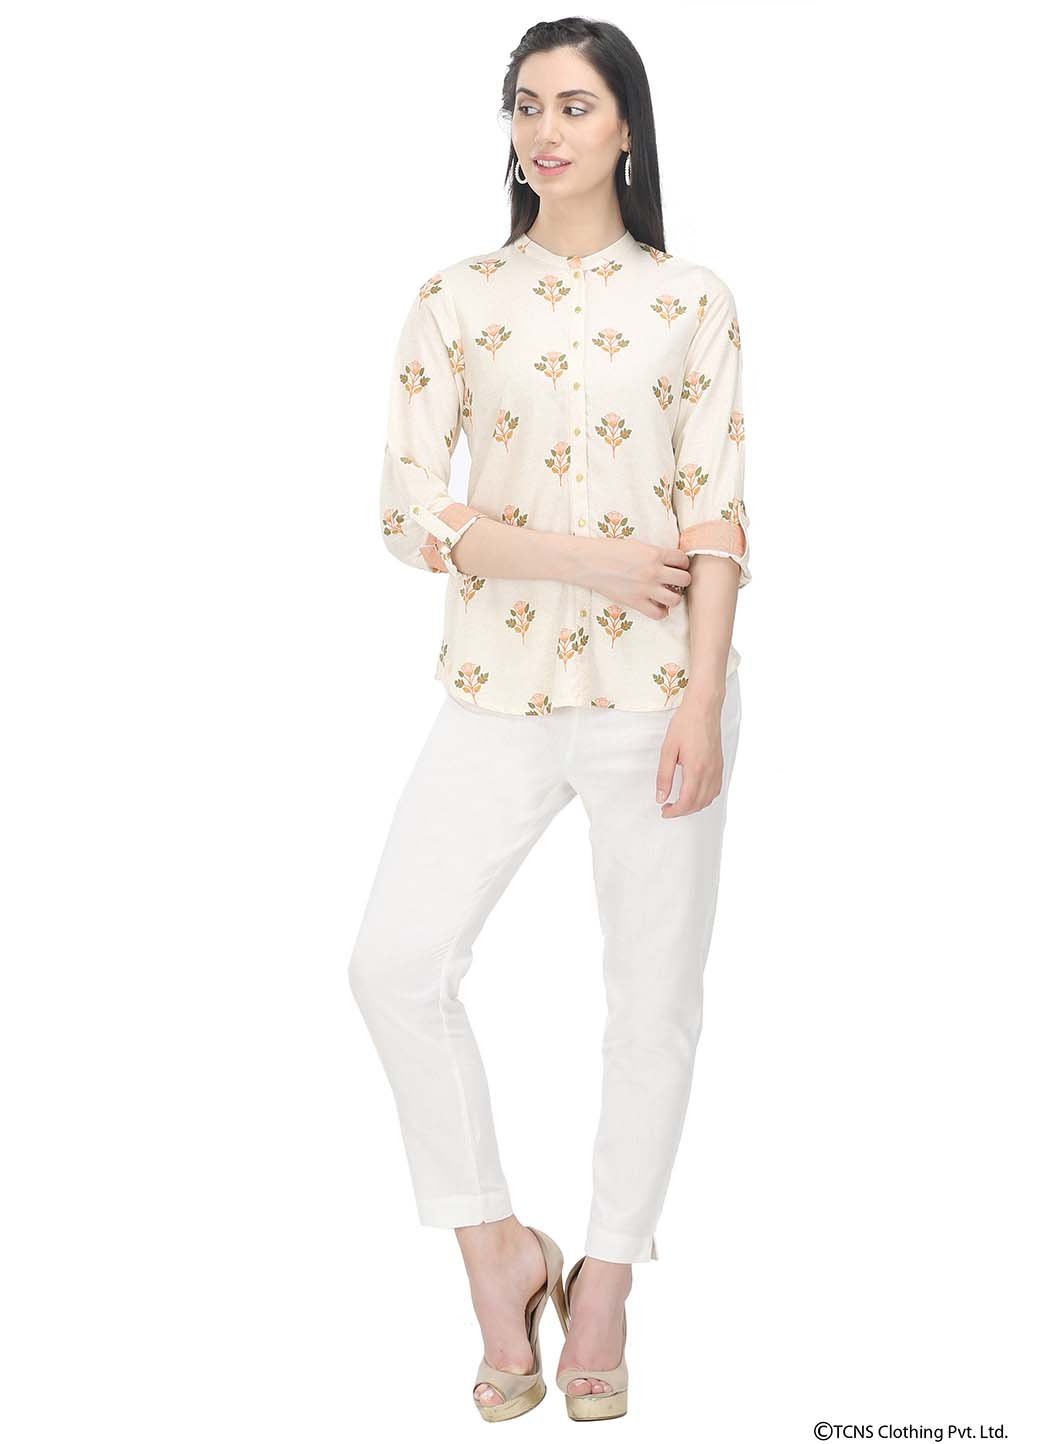 292f40fe4477b Mandarin Neck tops are an apt choice for formal wear when you are too bored  of the blazers and formal shirts. When paired with trousers or palazzo  pants ...